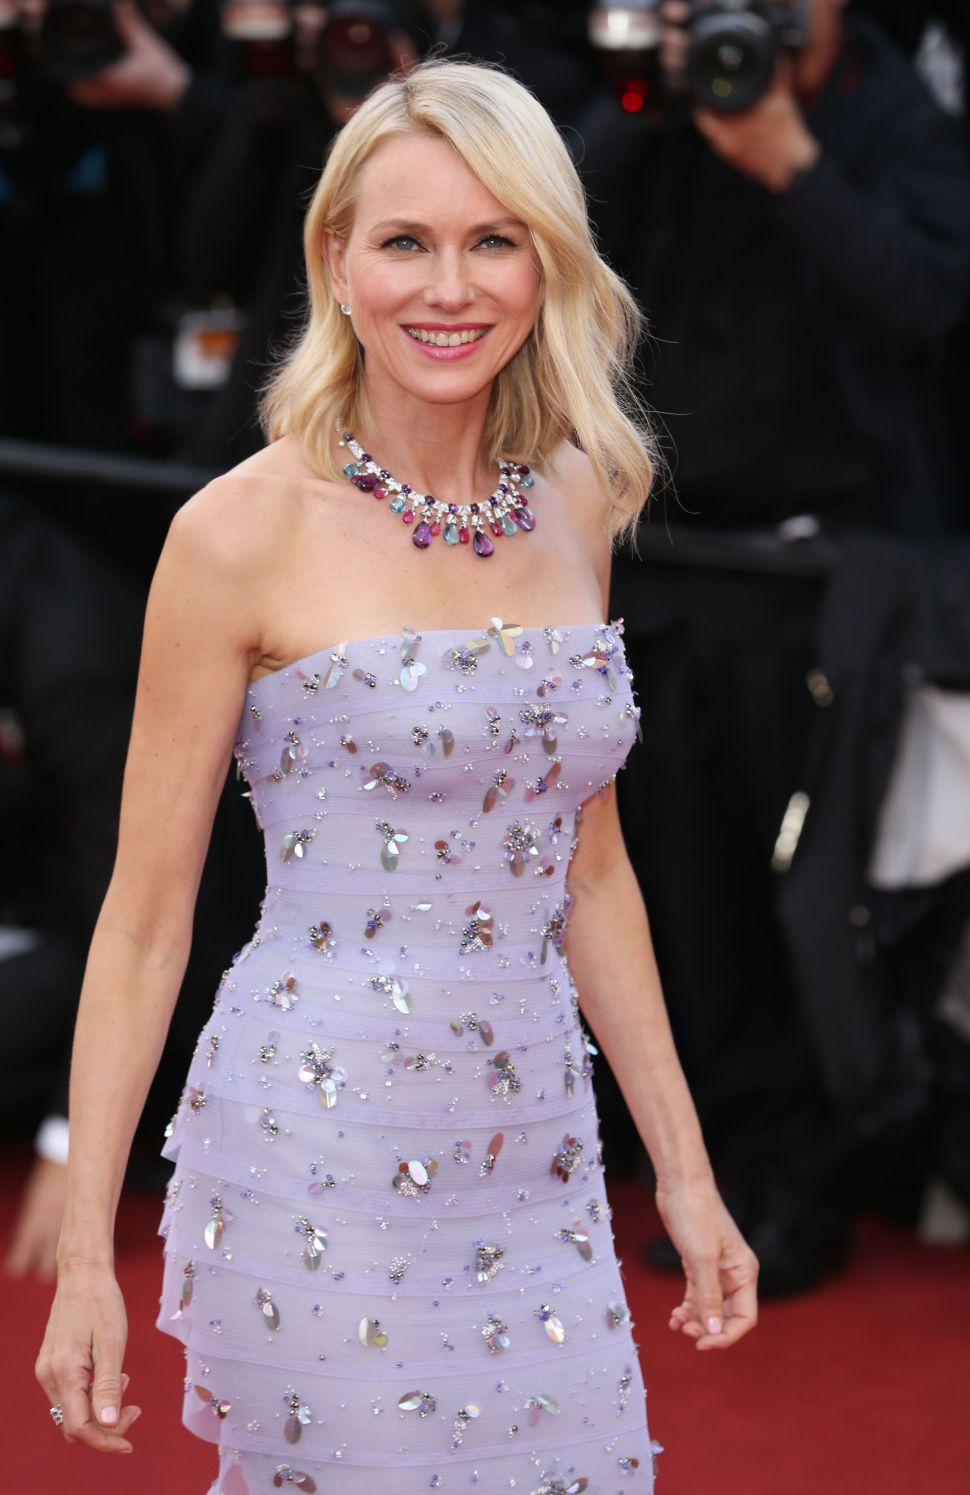 Mandatory Credit: Photo by James Gourley/REX/Shutterstock (5682158an) Naomi Watts'Cafe Society' premiere and opening ceremony, 69th Cannes Film Festival, France - 11 May 2016